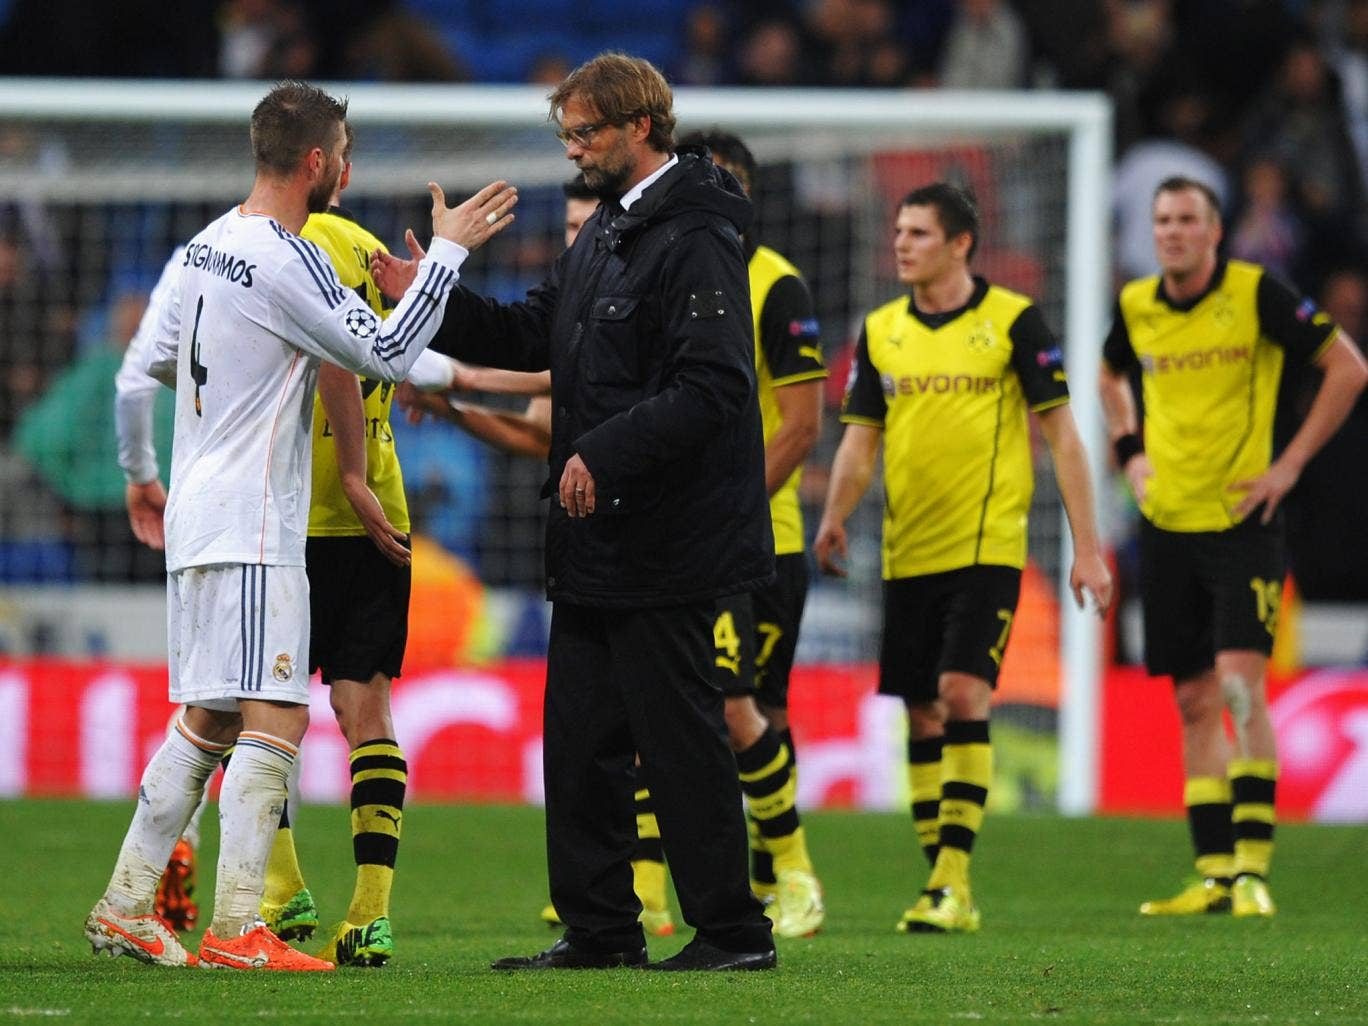 Sergio Ramos of Real Madrid shakes hands with Juergen Klopp, coach of Borussia Dortmund after the Champions League quarter final first-leg